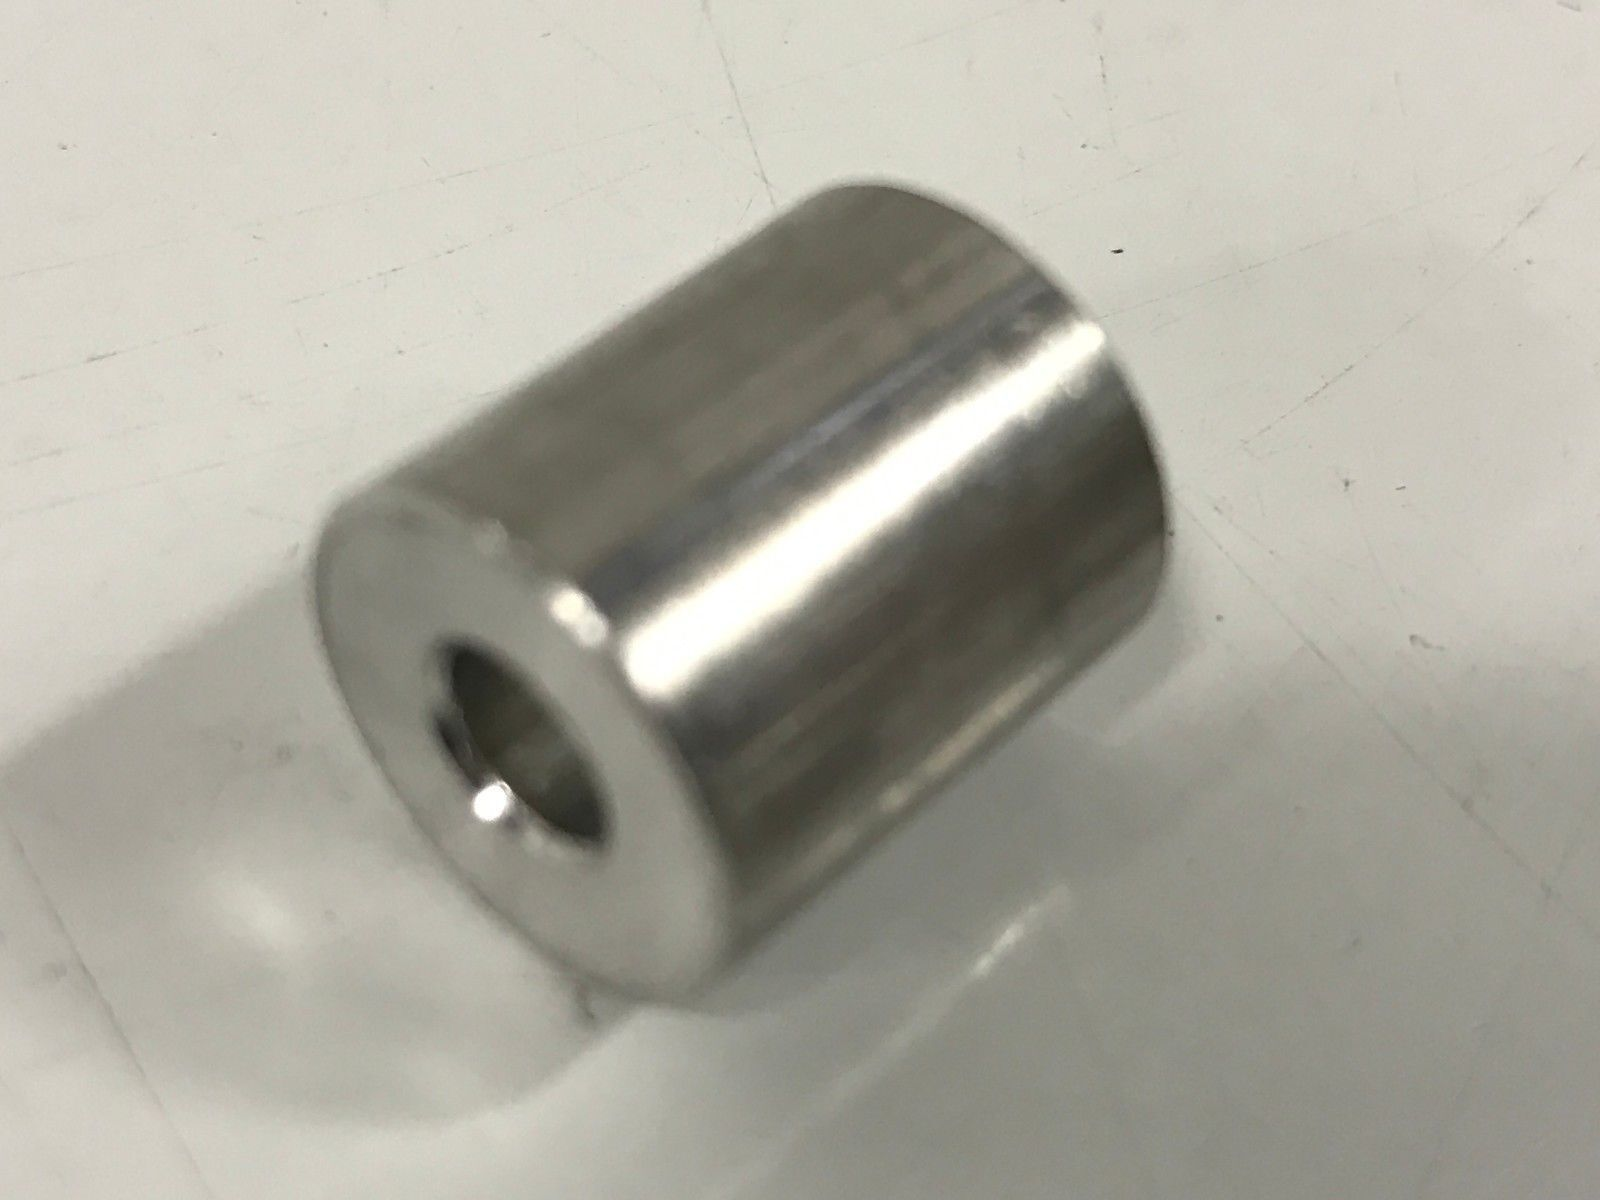 18-8 Stainless Steel 5//8 Length 3//8 OD Pack of 5 Plain Finish Round Spacer #10 Screw Size 0.192 ID